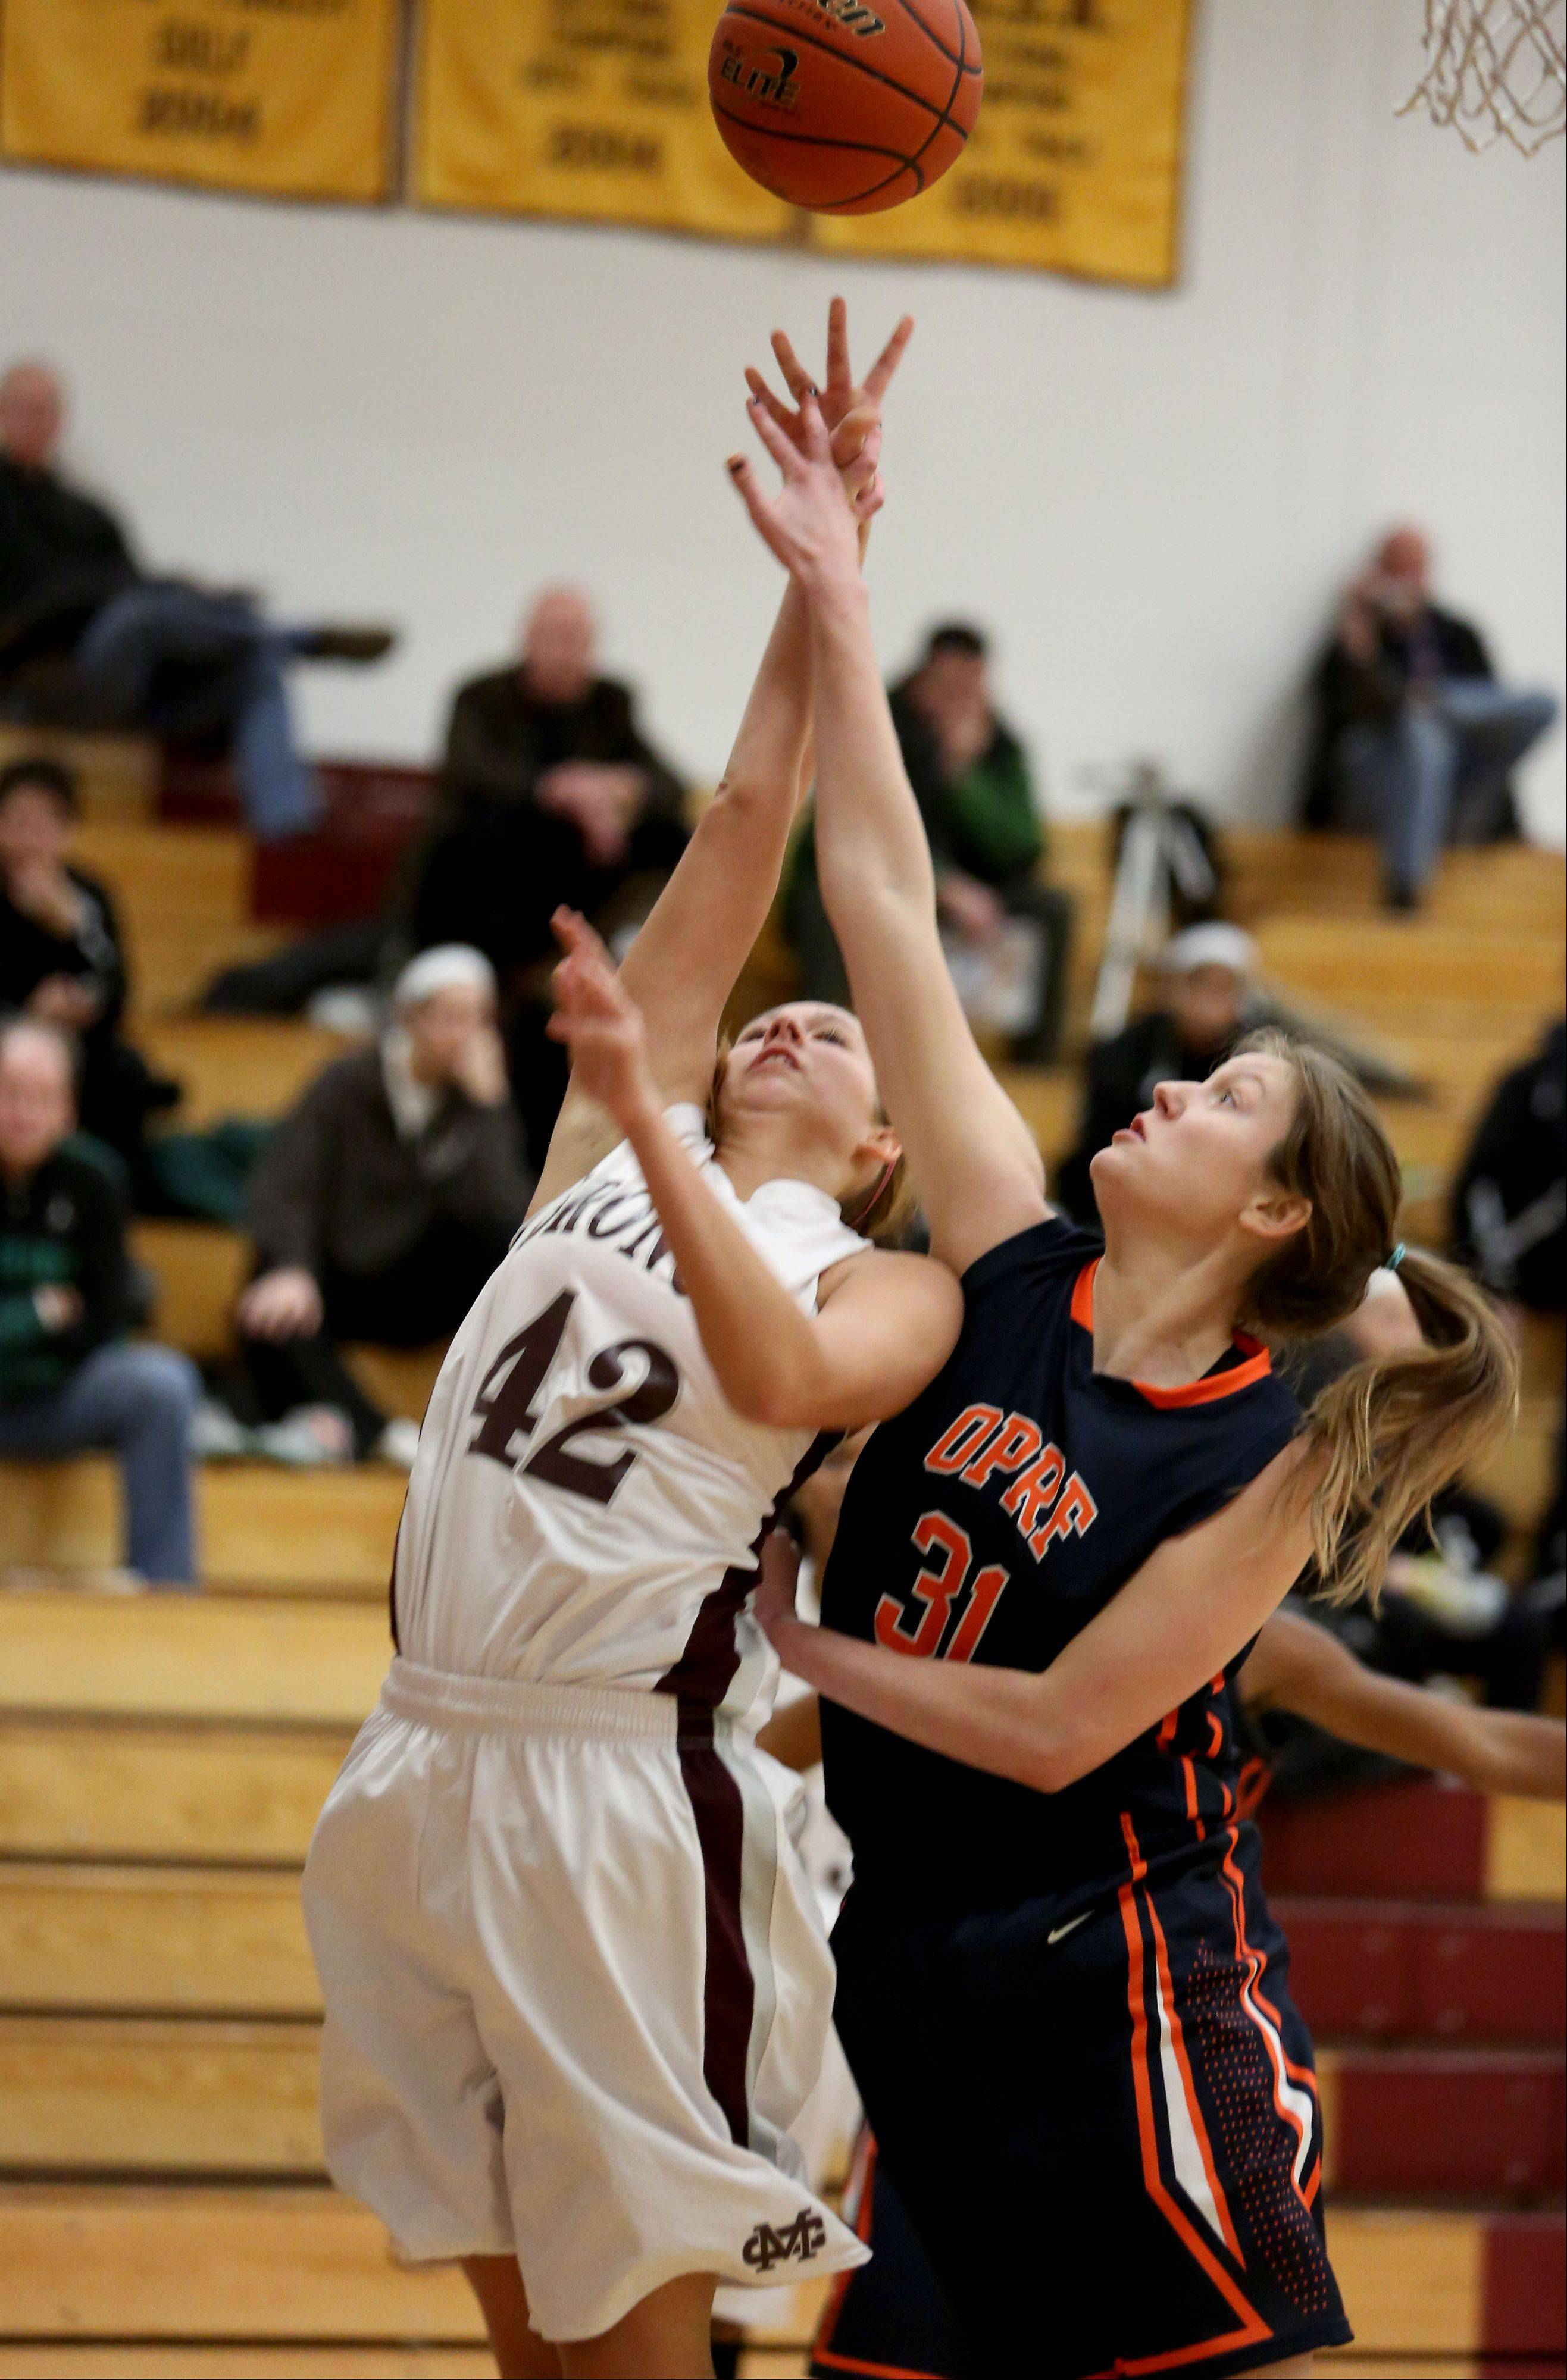 Calire Jakaitis, left of Montini and Gareth Coalson, right, of Oak Park River Forest, go for a rebound.